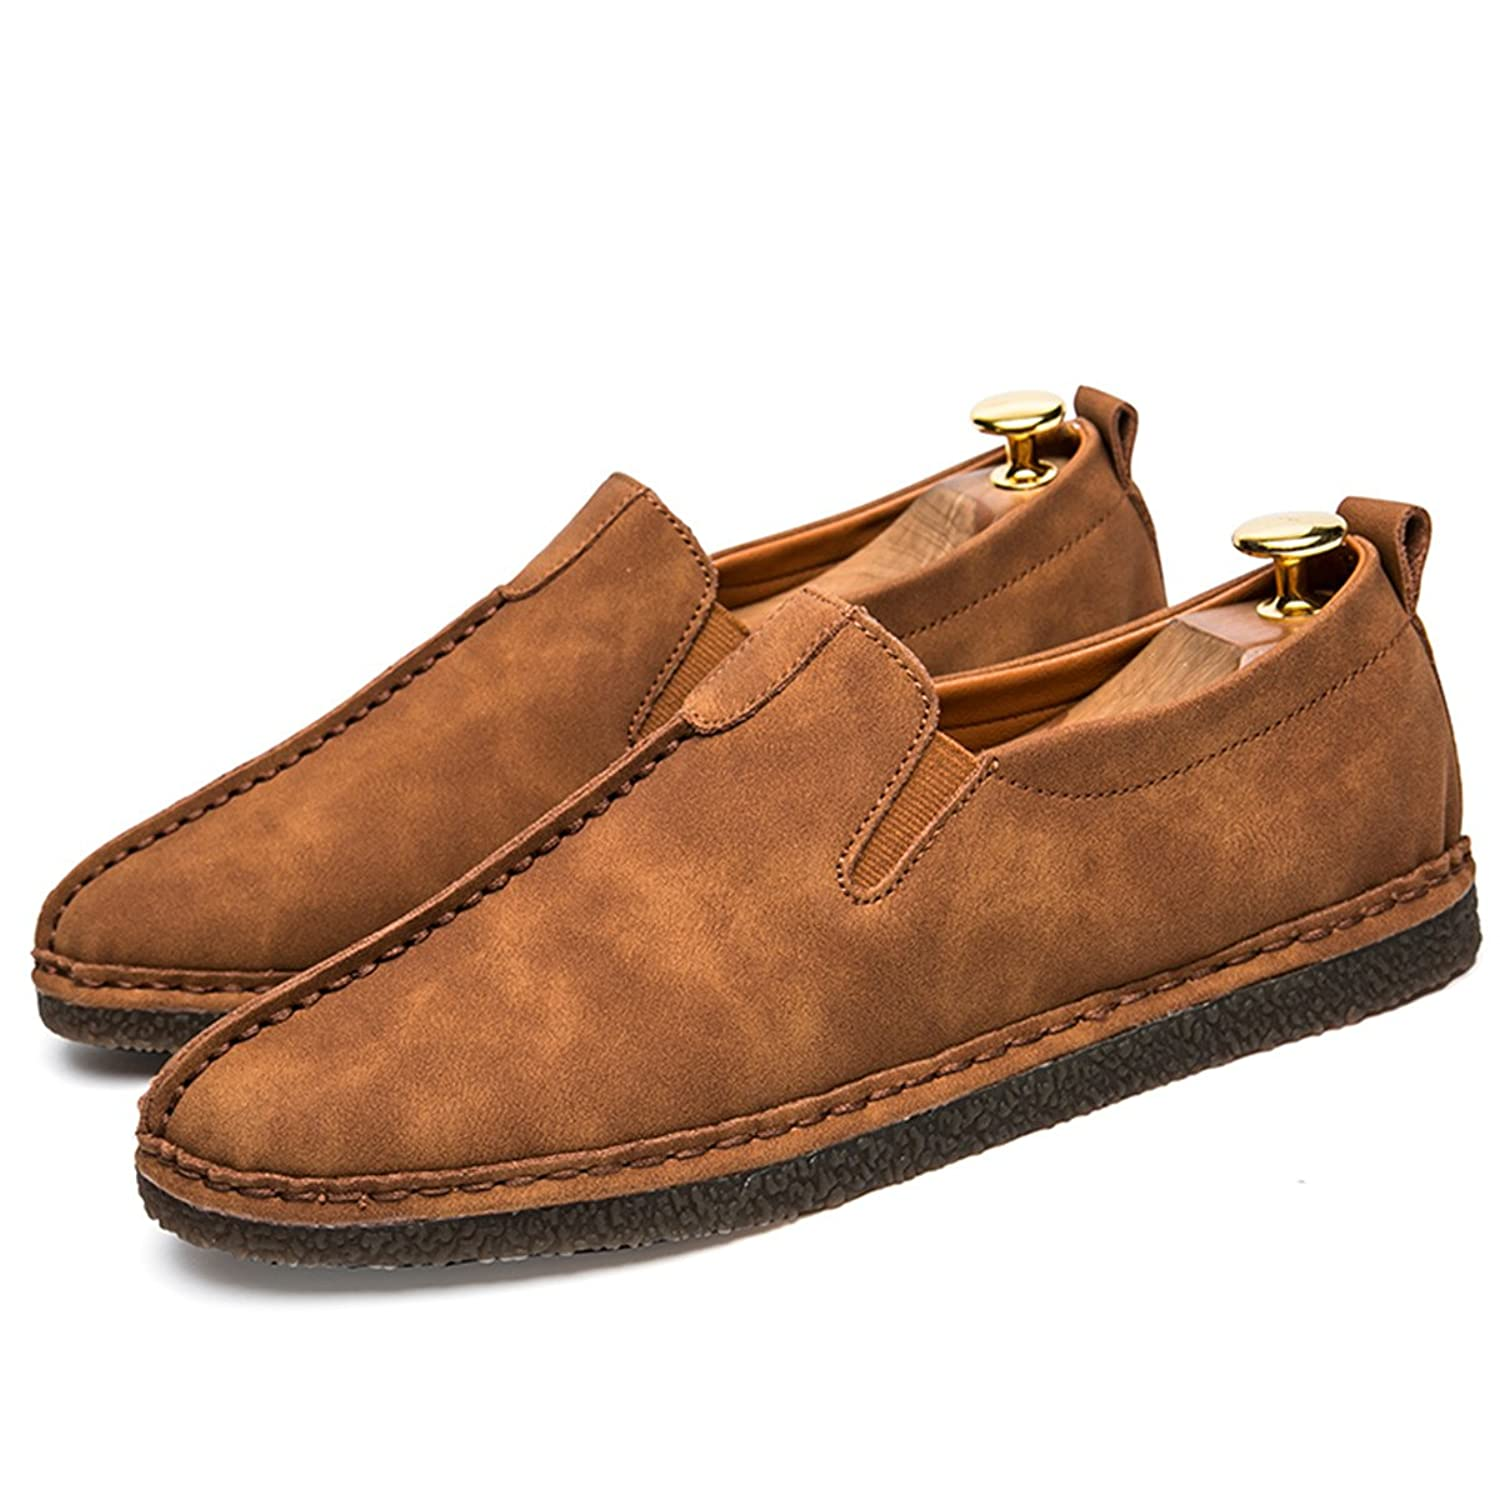 Men's Manual Casual Shoes Slip-on Monk Shoes Fashion Men Shoes Loafers